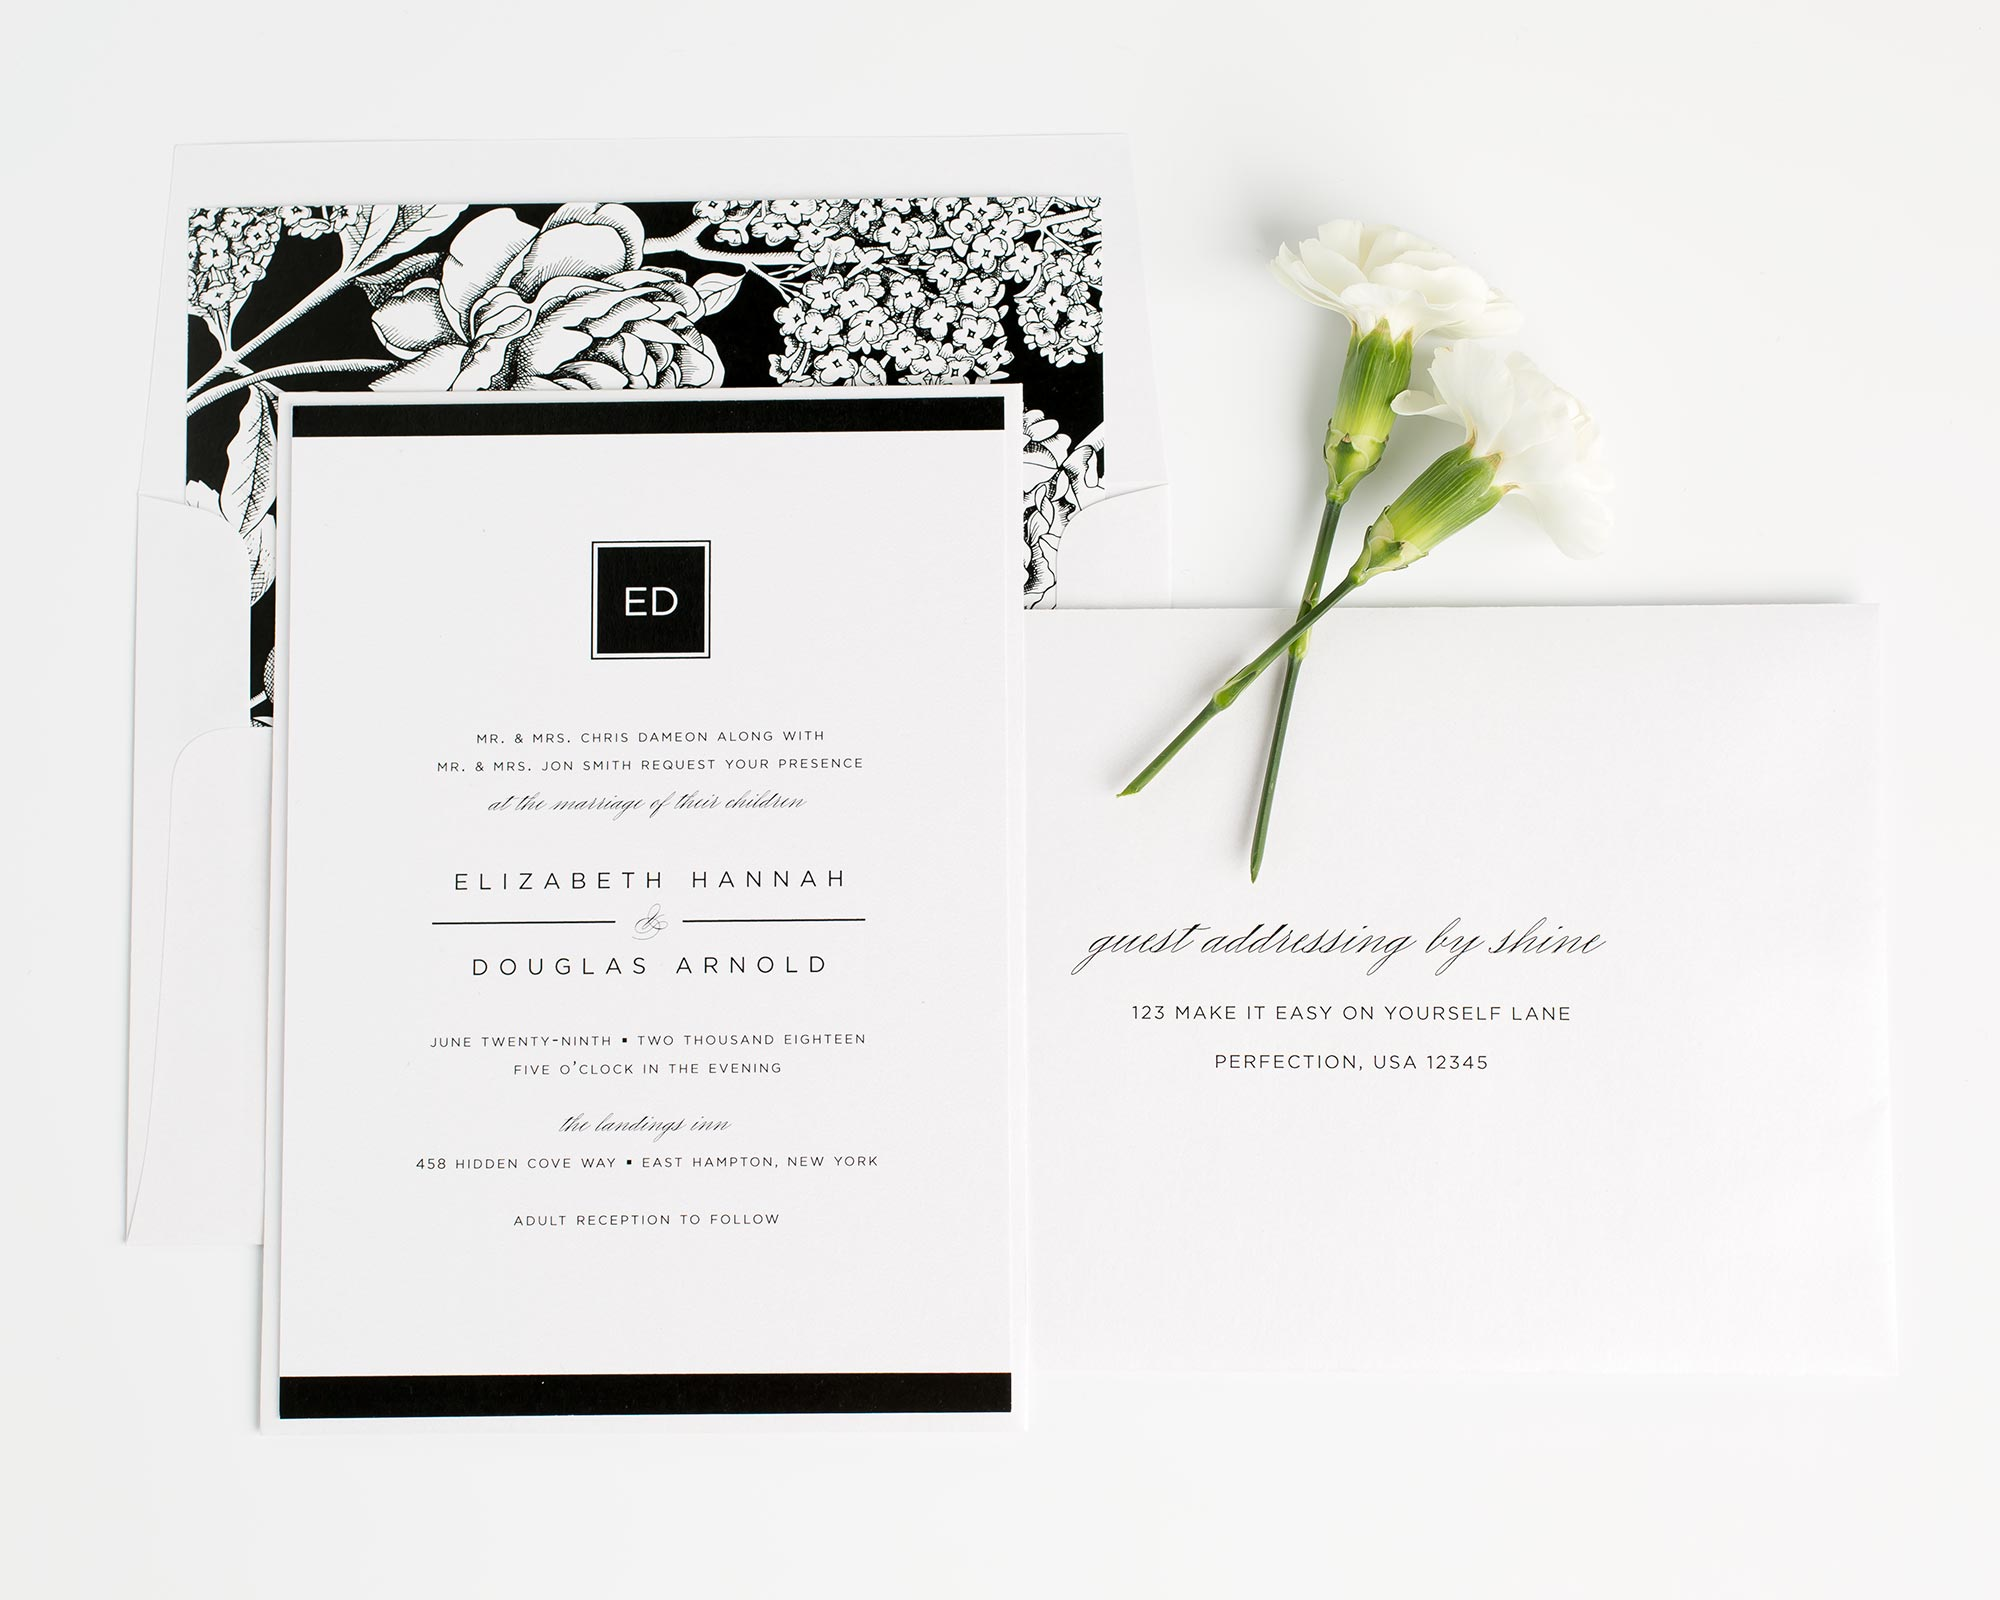 40 Beautiful My Wedding Invitation Wording for Friends Images